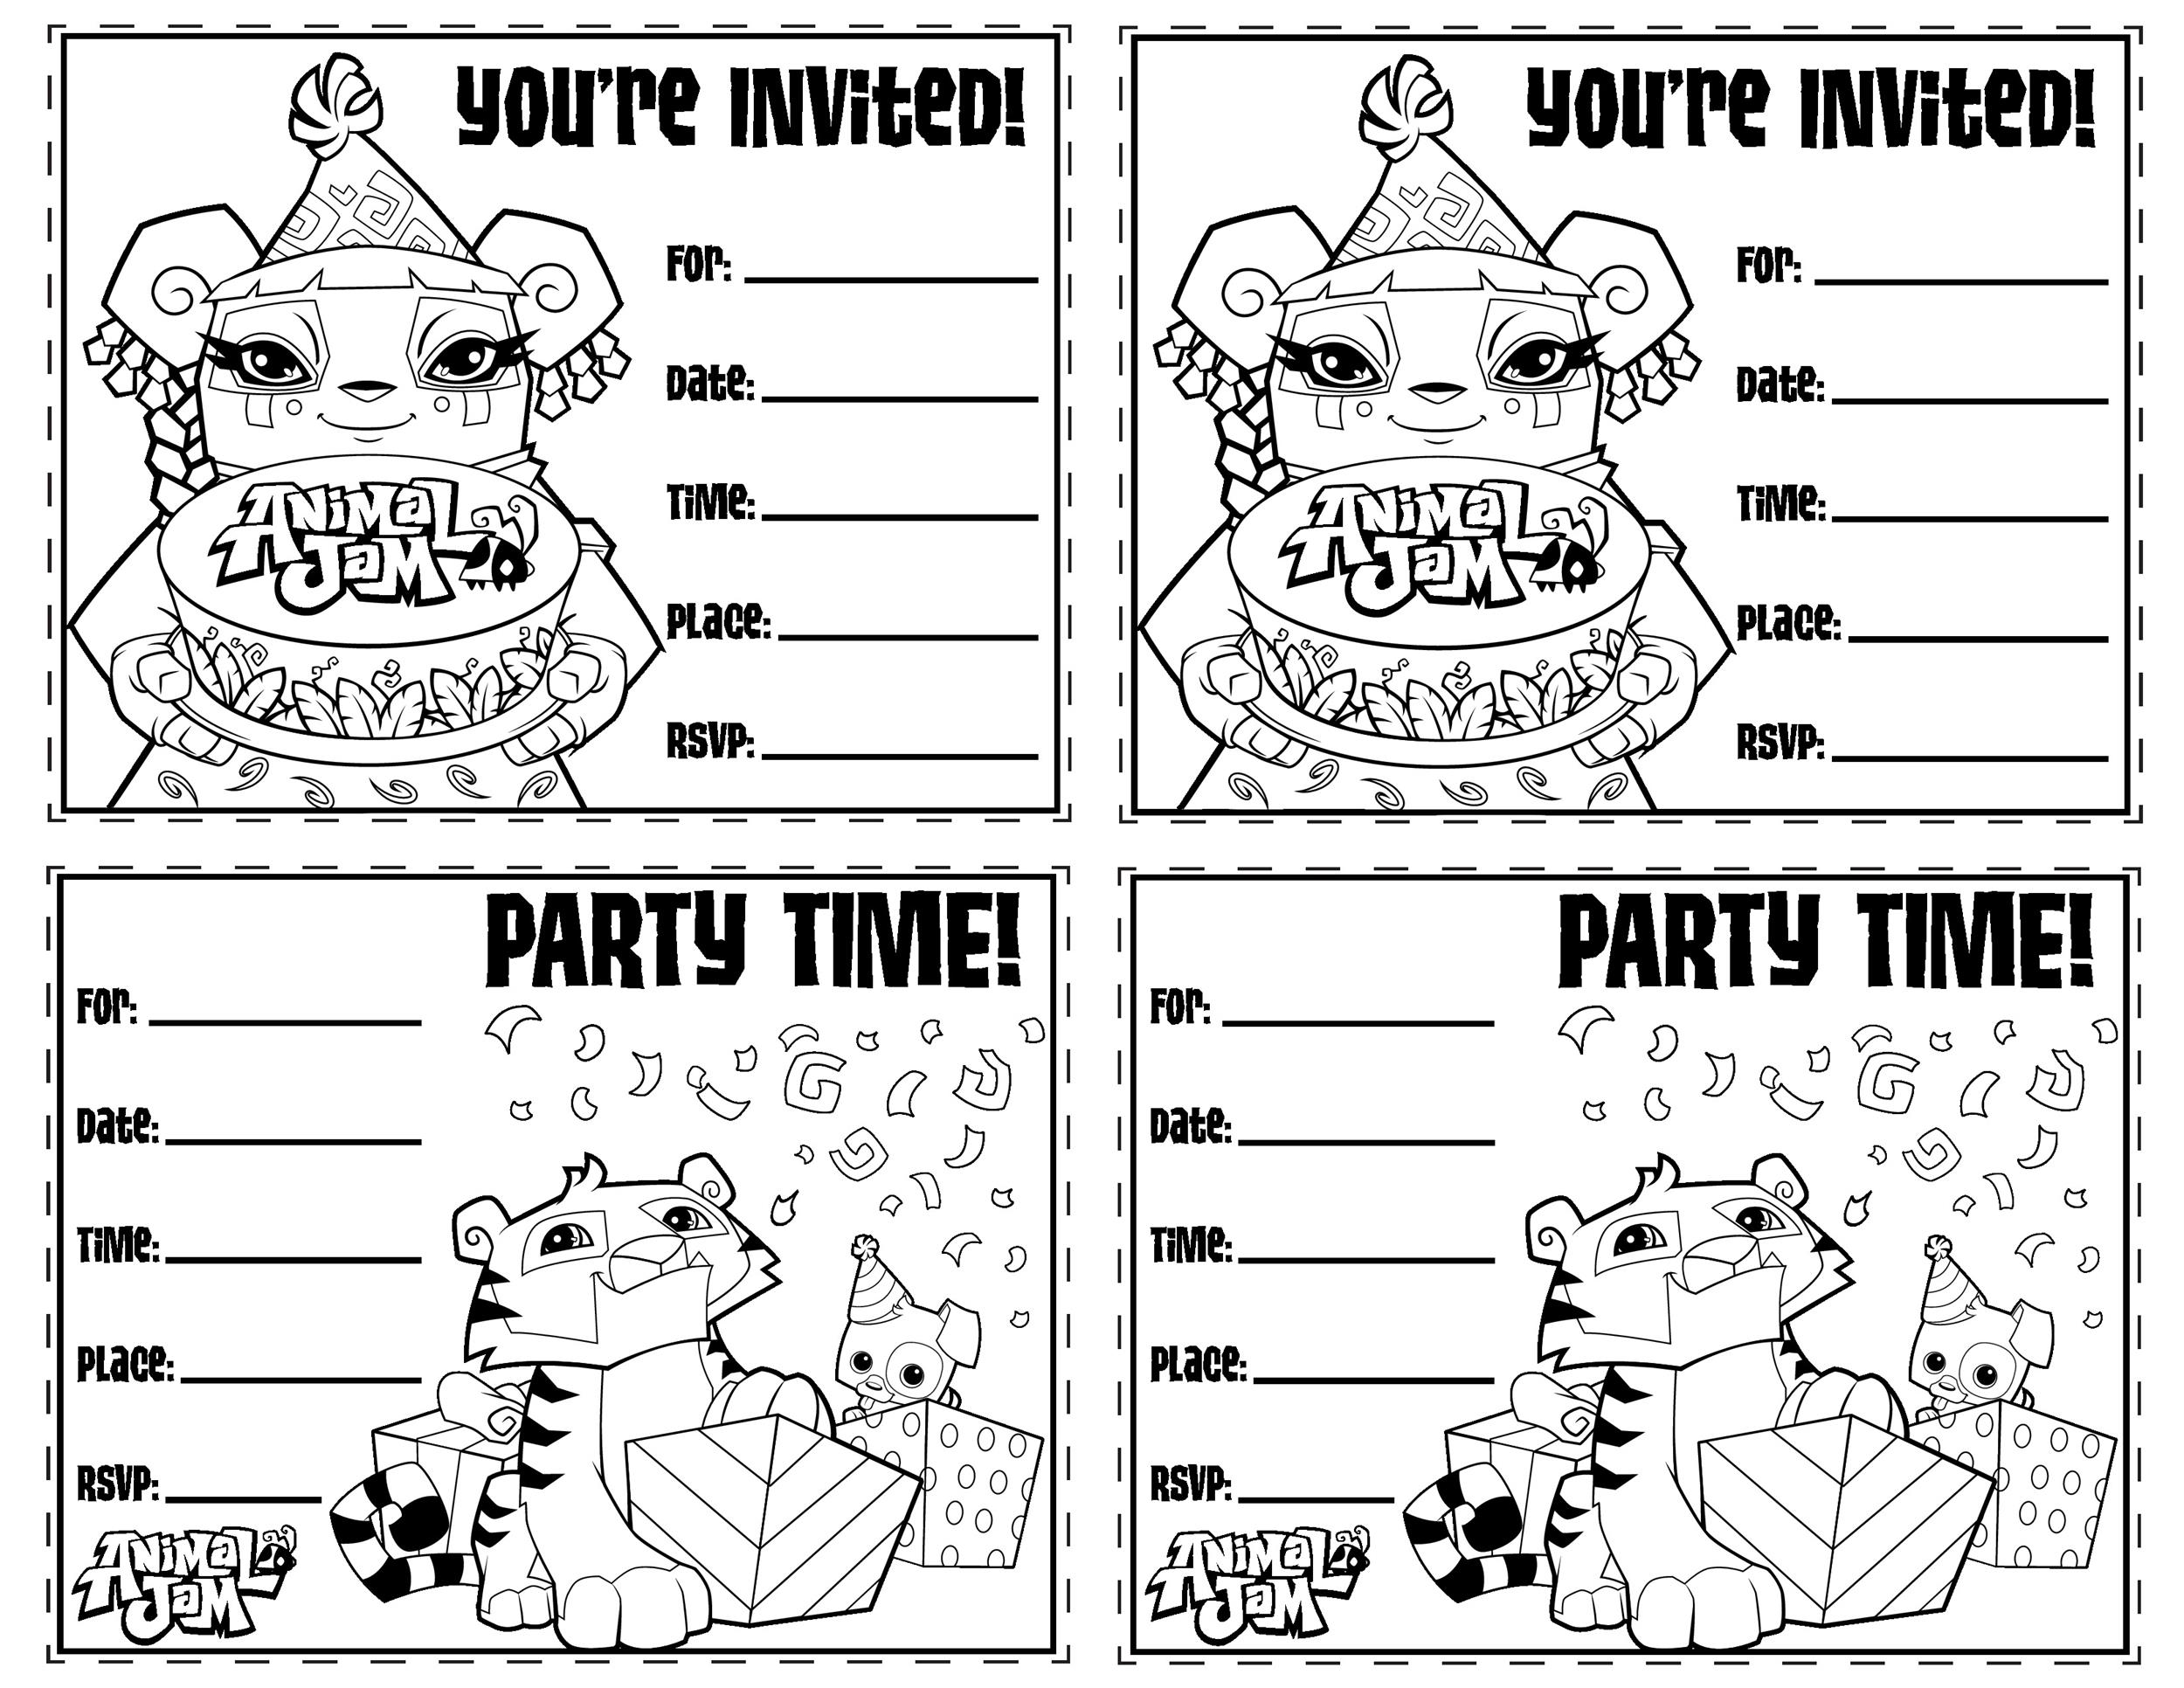 Free Birthday Invitations Templates gangcraftnet – Birthday Party Invitation Template